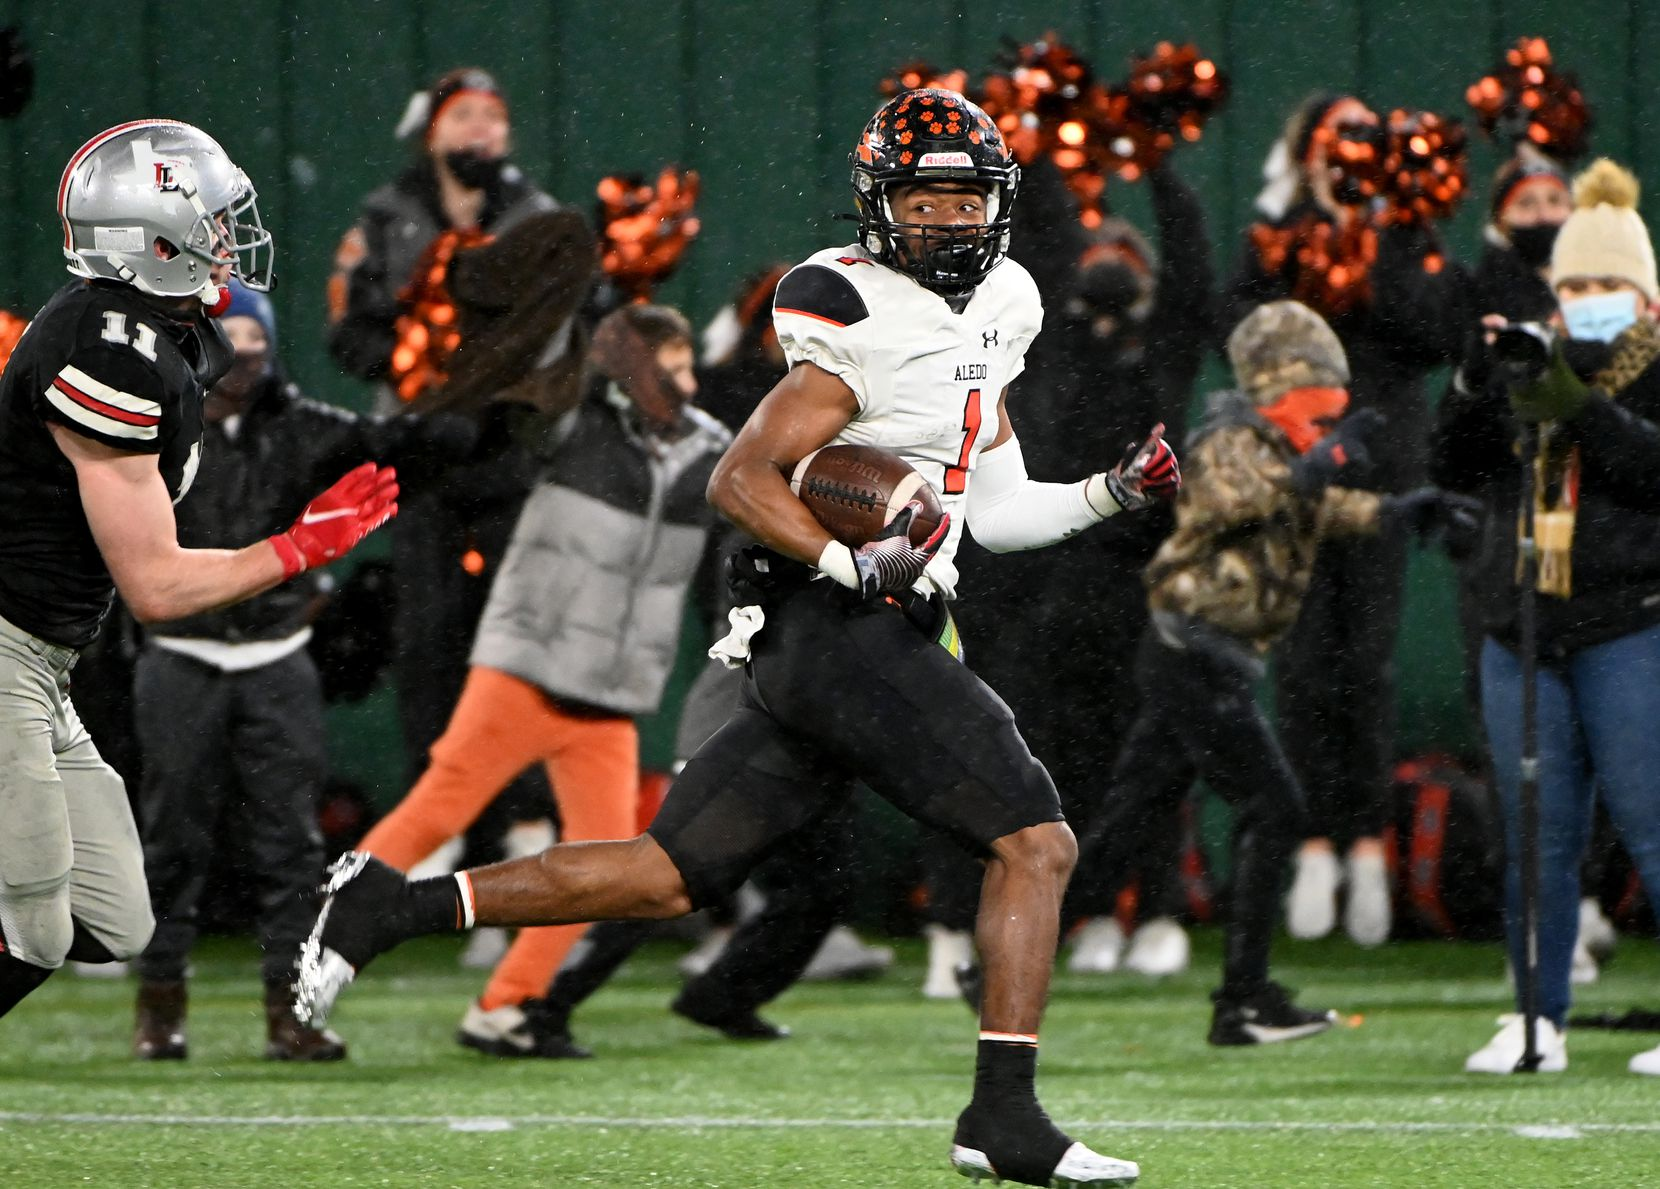 Aledo's Jo Jo Earle (1) runs past Lovejoy's Chief Collins for a touchdown in the first quarter of a Class 5A Div. II Region II final on Friday, Jan. 1, 2021, in Arlington.